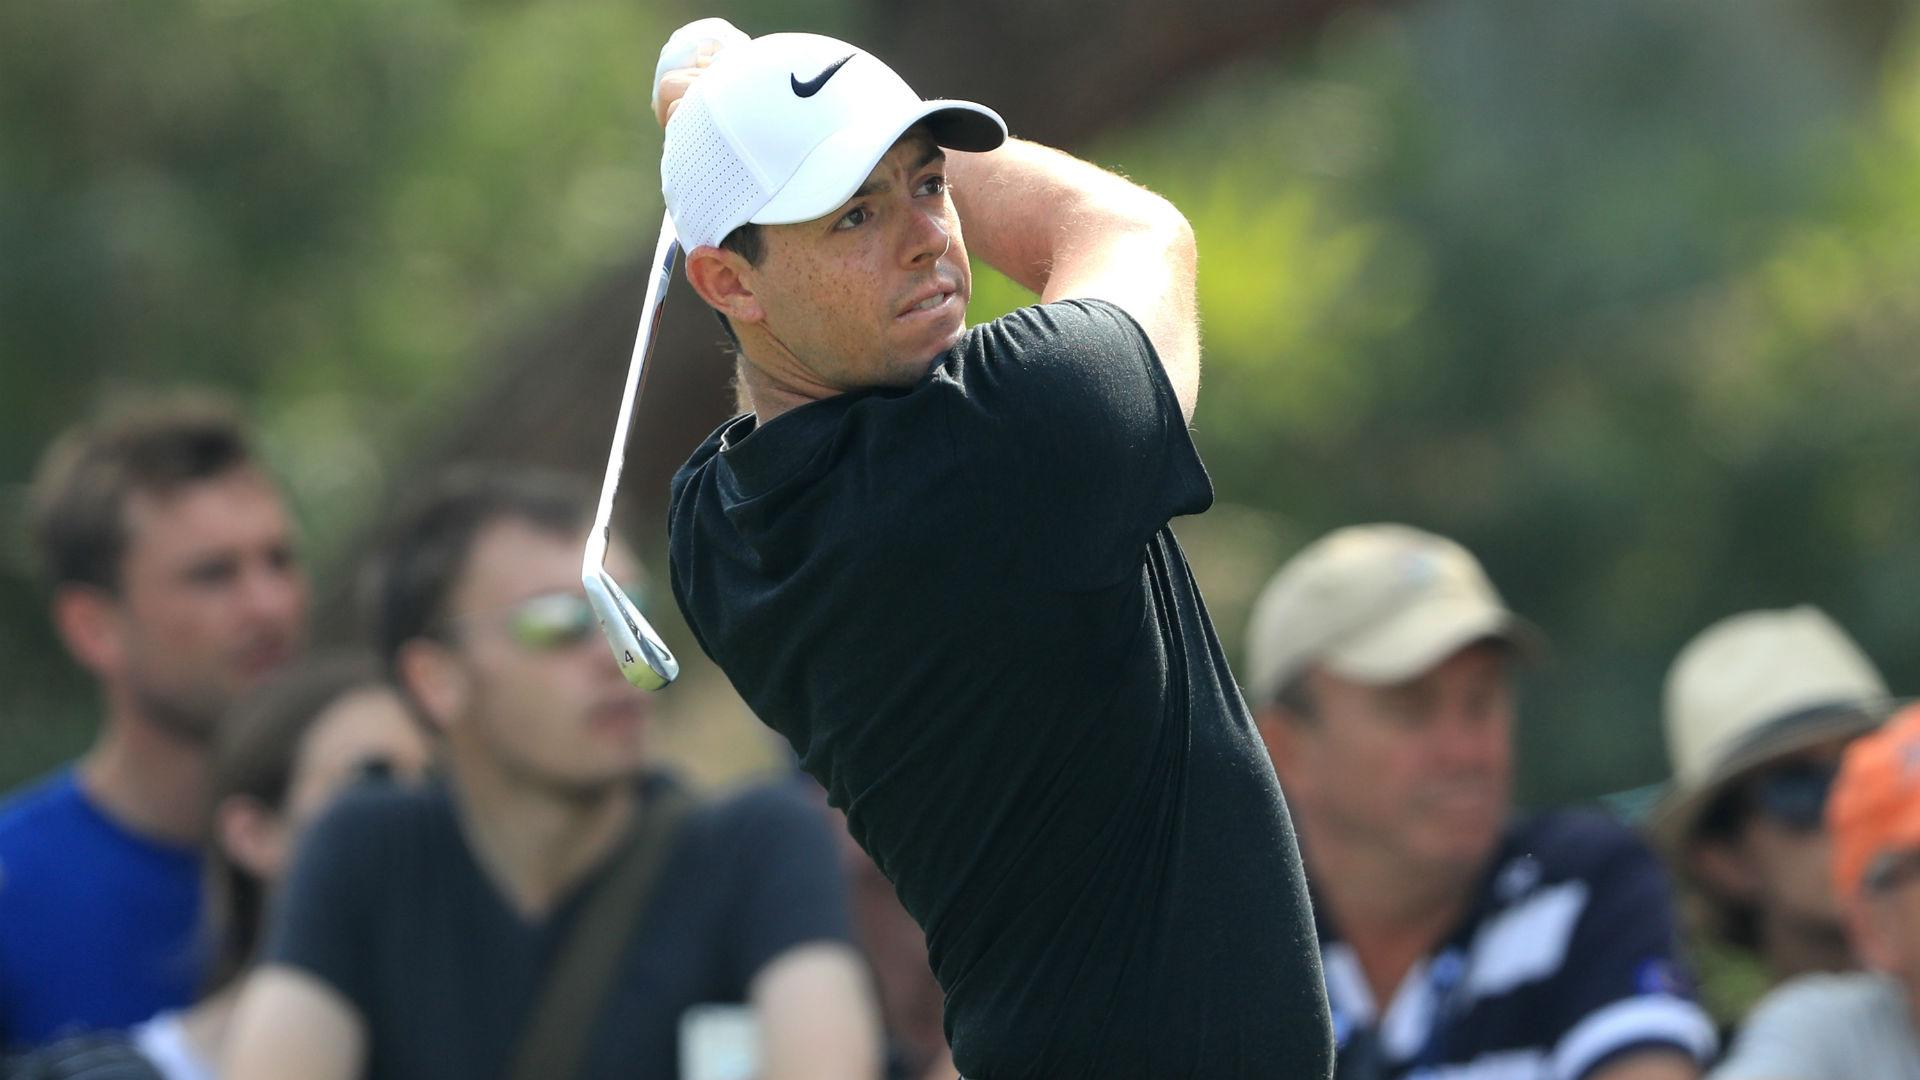 Rory McIlroy Picks Callaway Clubs Titleist Ball Report Says